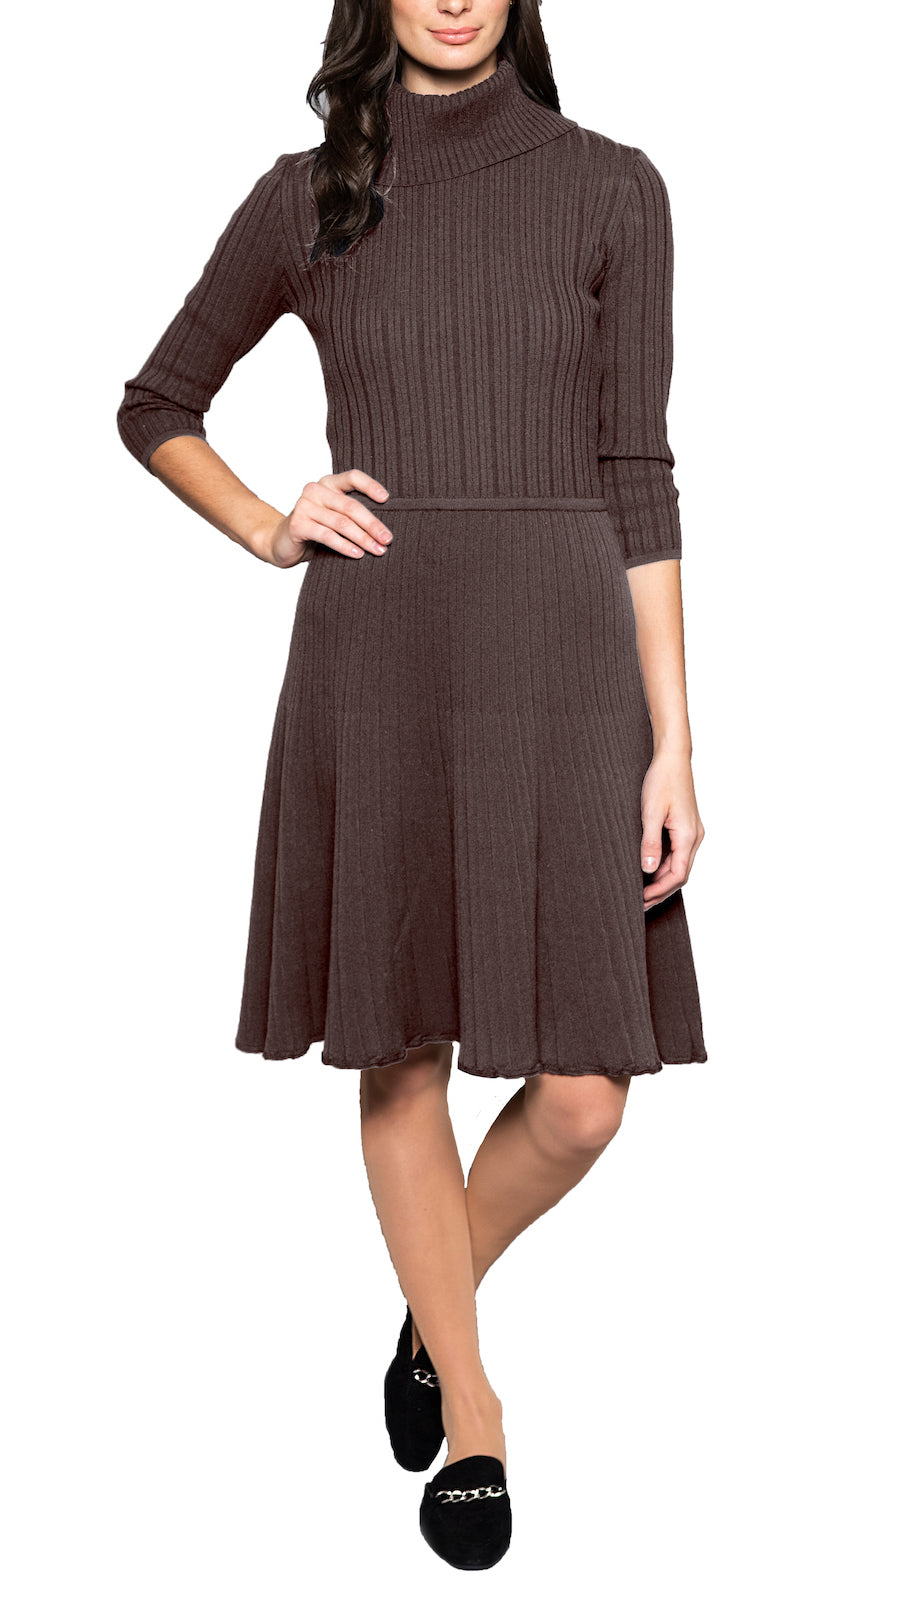 CONTEMPO Carlina knitted dress, Taupe Brown